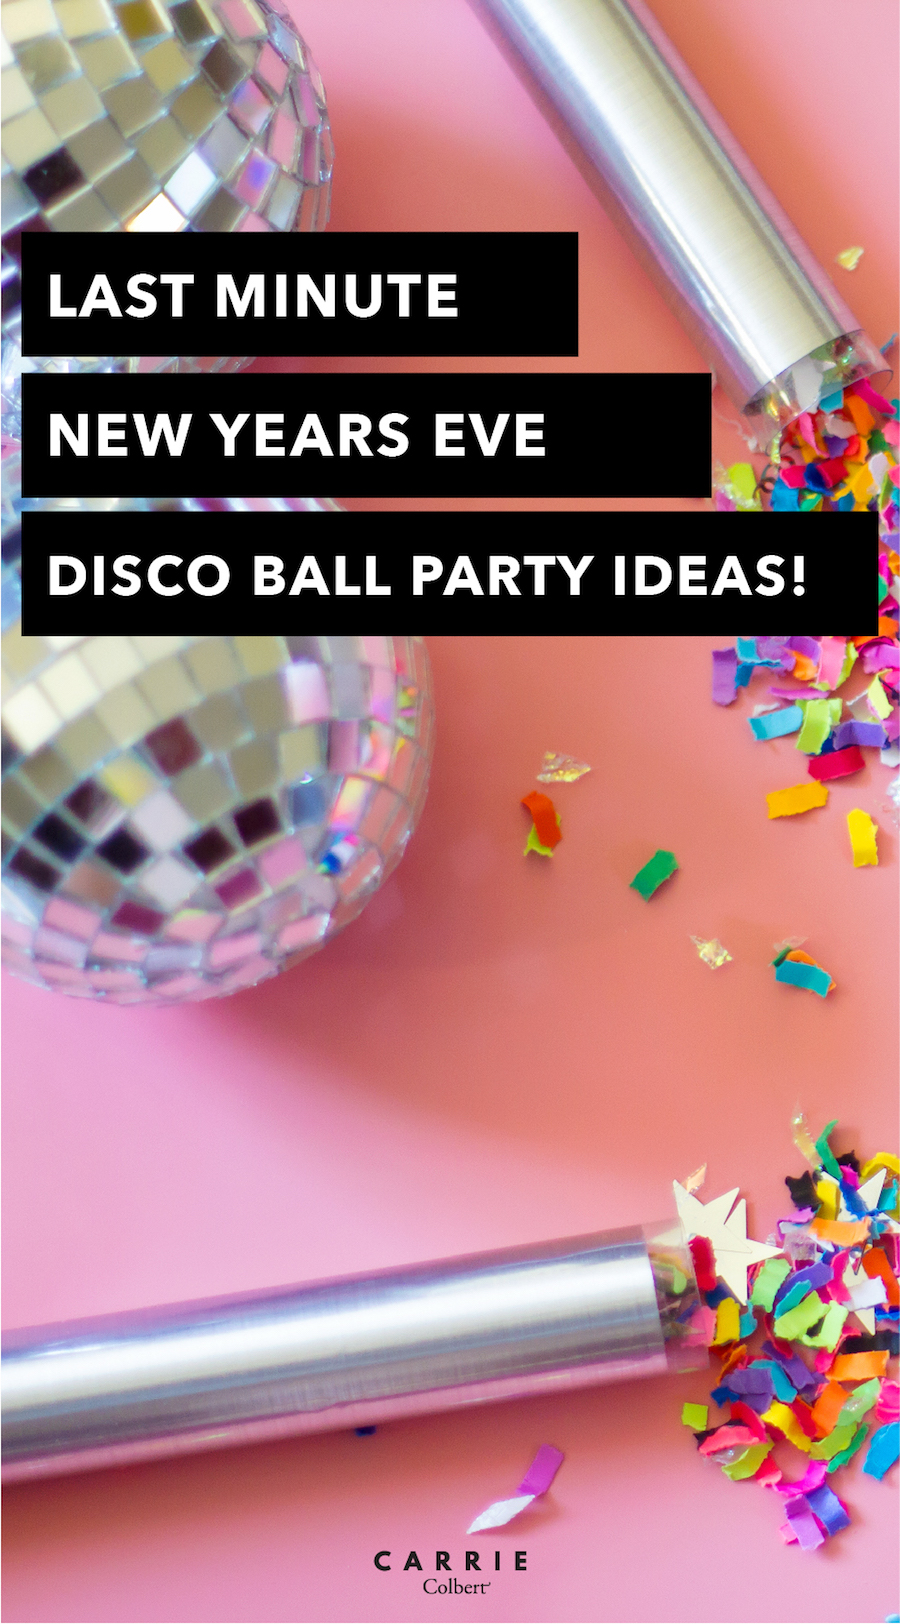 6 ideas for hosting a disco ball inspired new year 39 s eve party carrie colbert - Last minute new year s eve party ideas ...